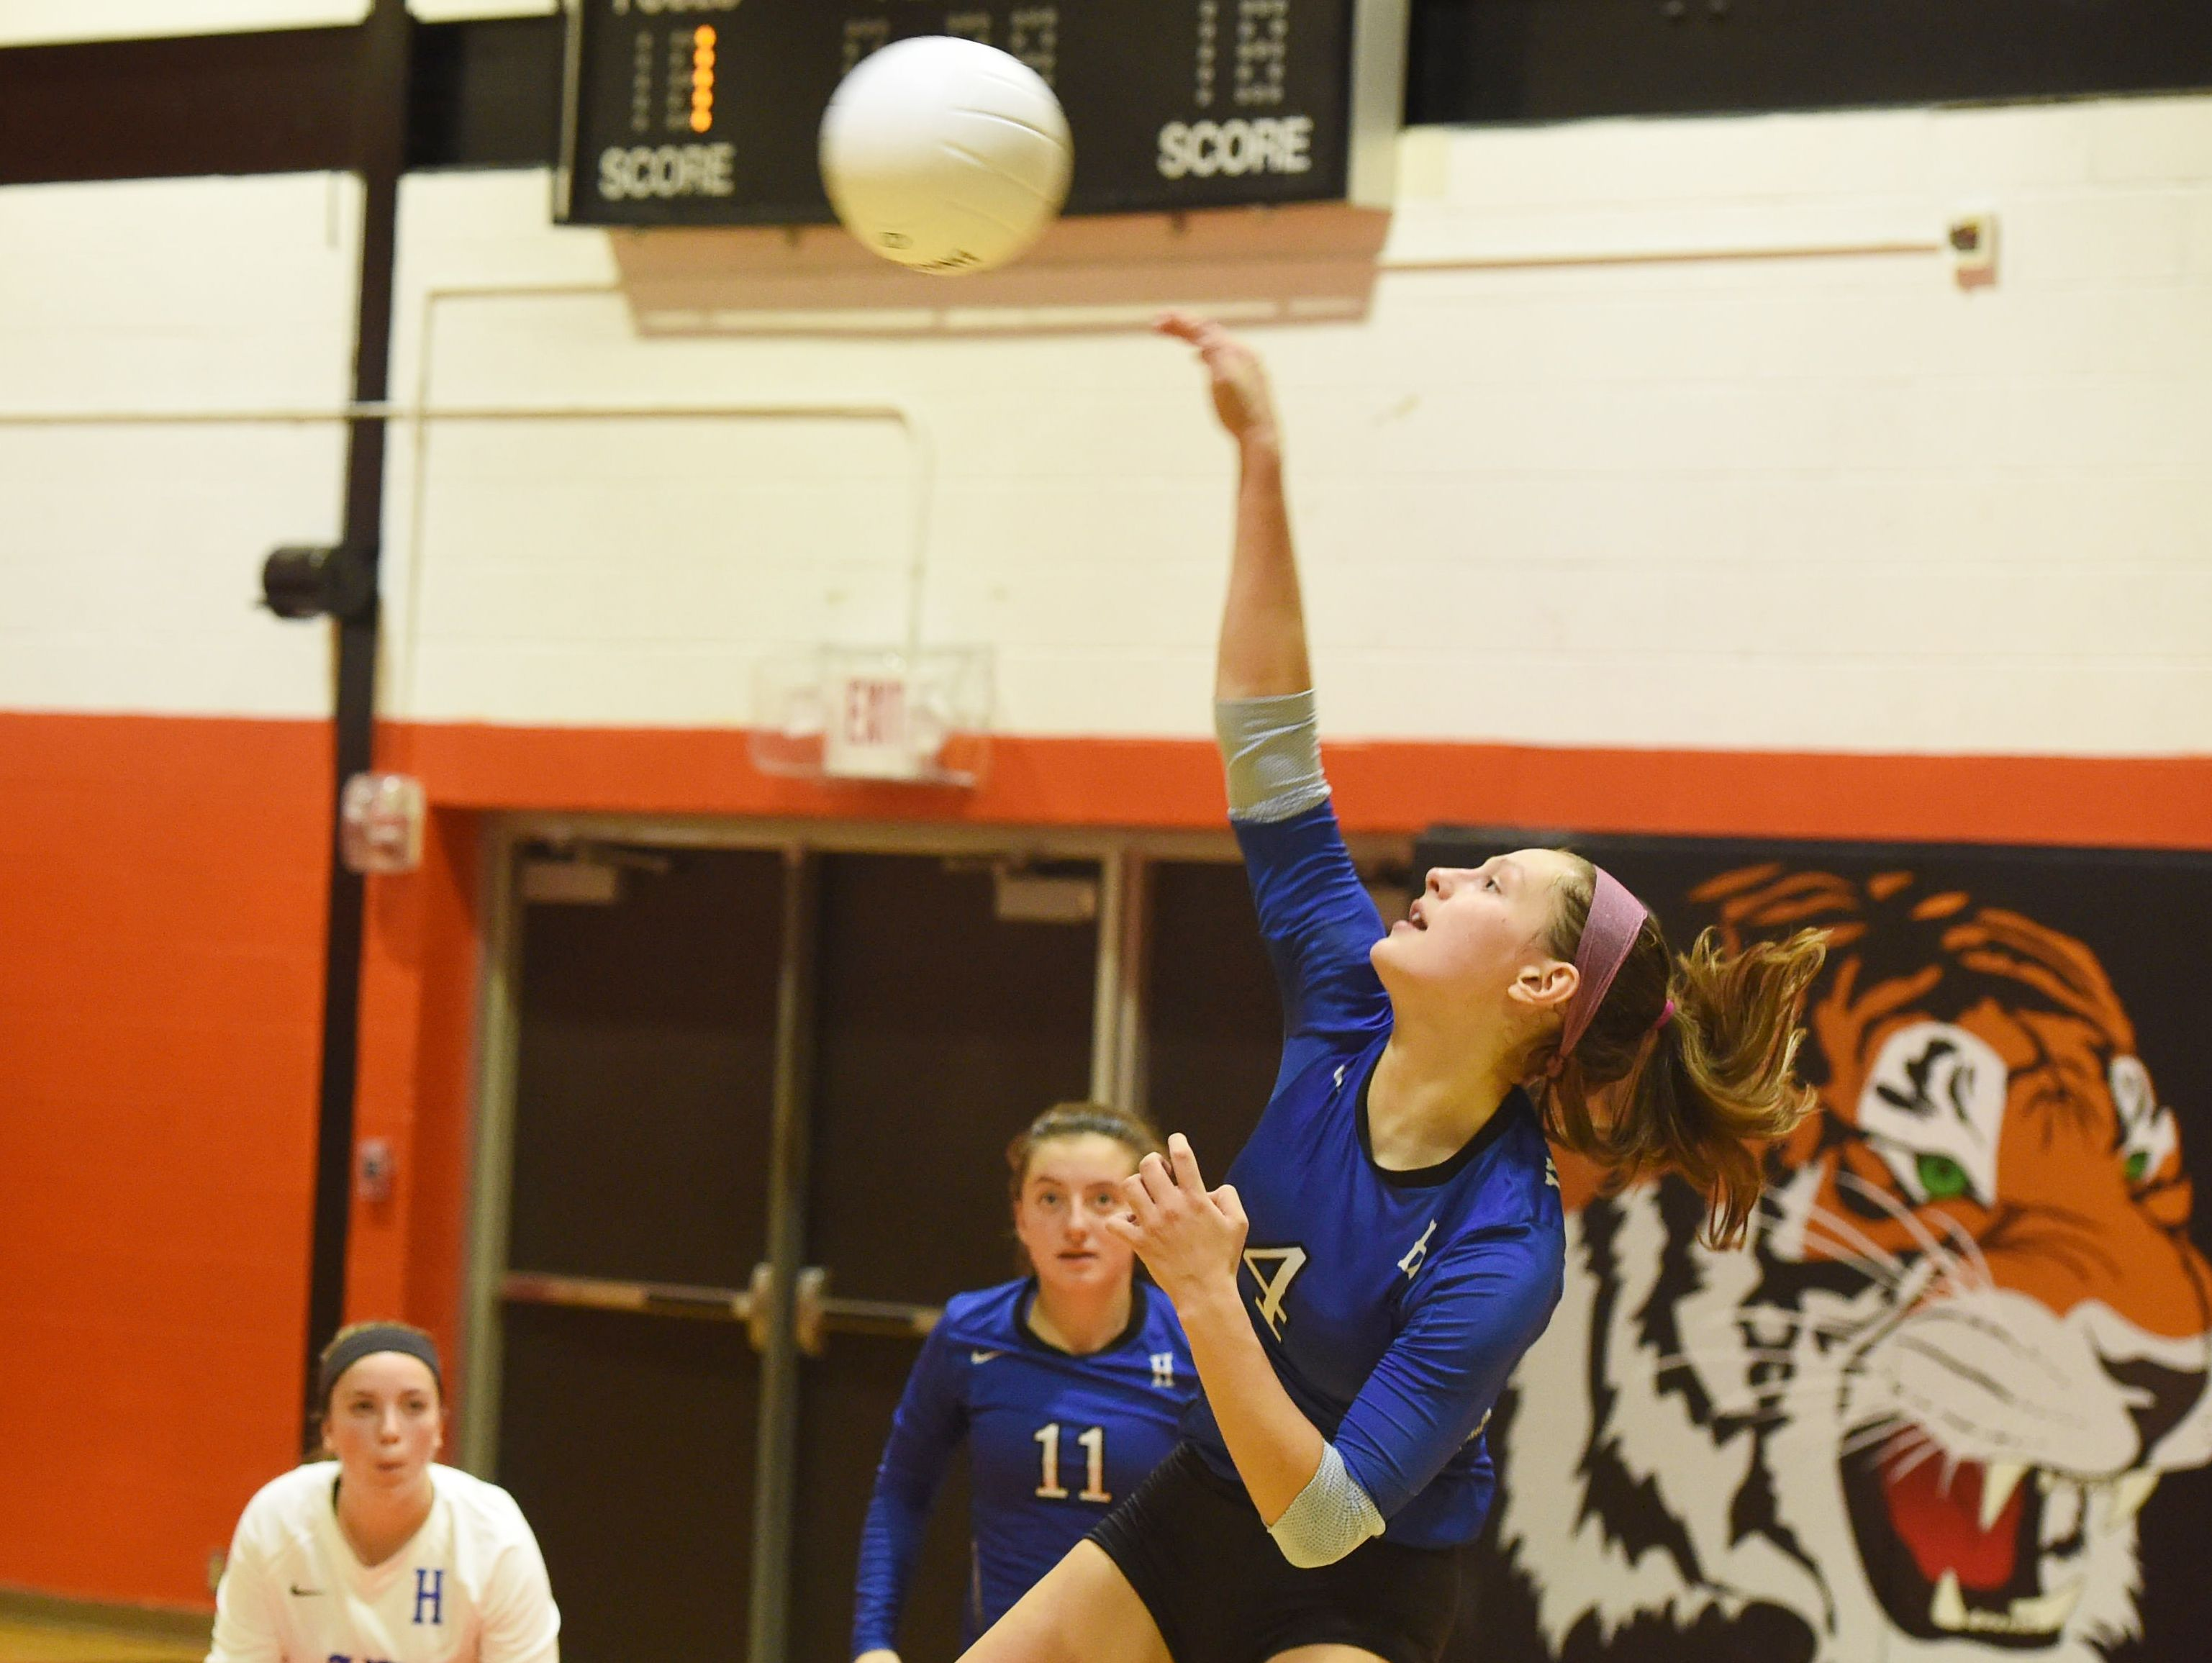 Haldane's Brooke Vahos hits the ball towards the net during Wednesday's game against Pawling.